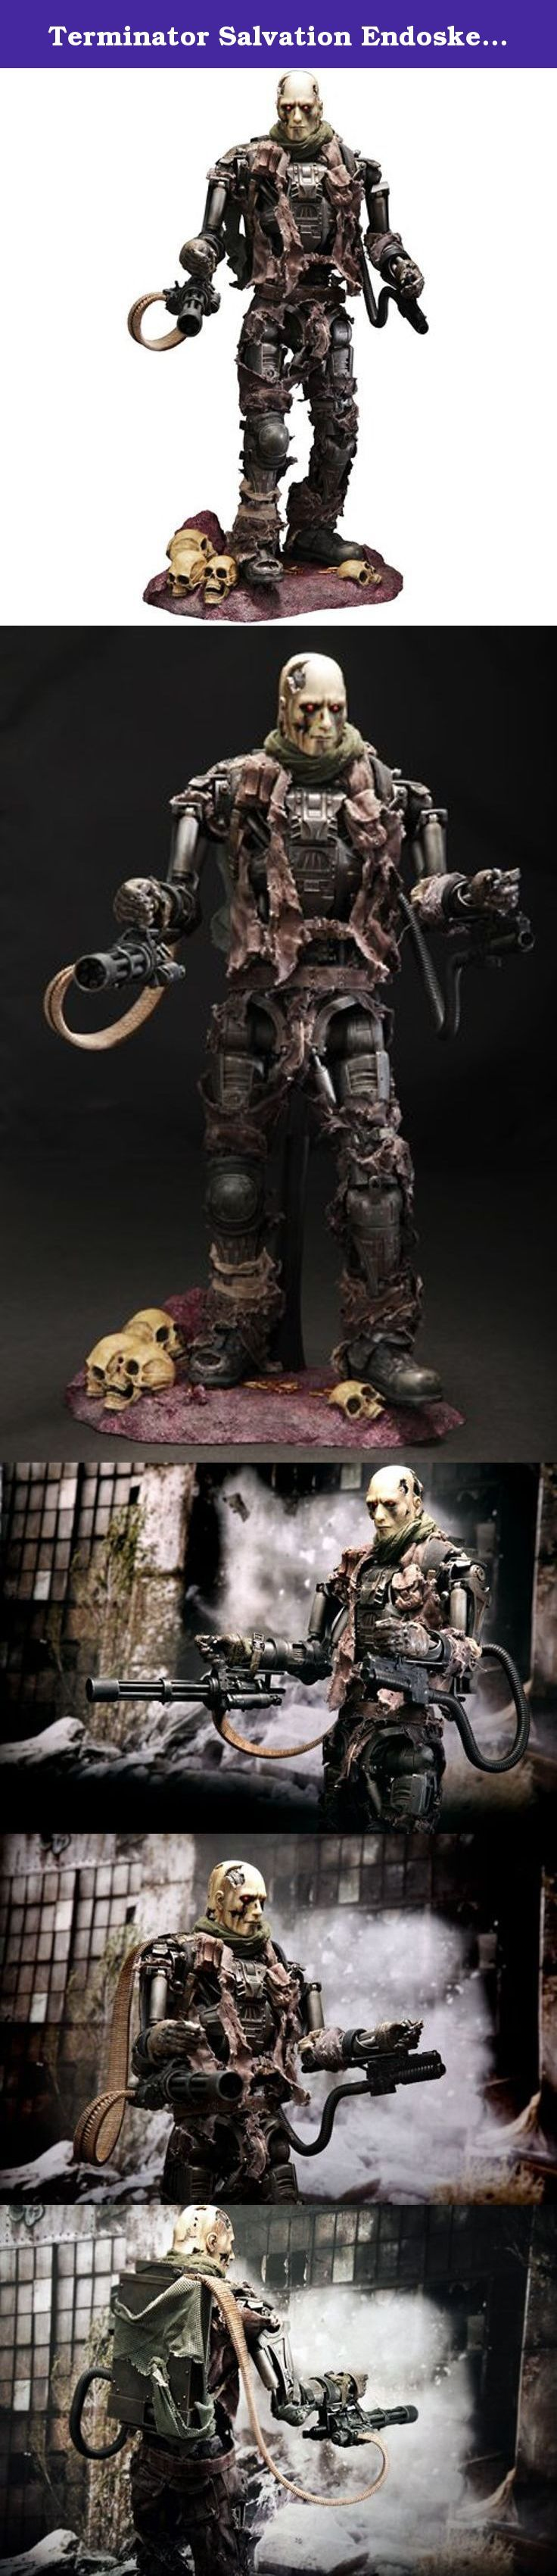 """Terminator Salvation Endoskeleton T-600 Weathered Rubber Skin Version By Hot Toys. The """"movie masterpiece"""" series of hot toys. Movable 40 places or more including the finger of both hands; do it! And I reproduce an image of the in a play by the light up function of the eyes which shine red which can be called the characteristic of a pedestal and the terminator reflecting the image of a terminator factory wonderfully!."""